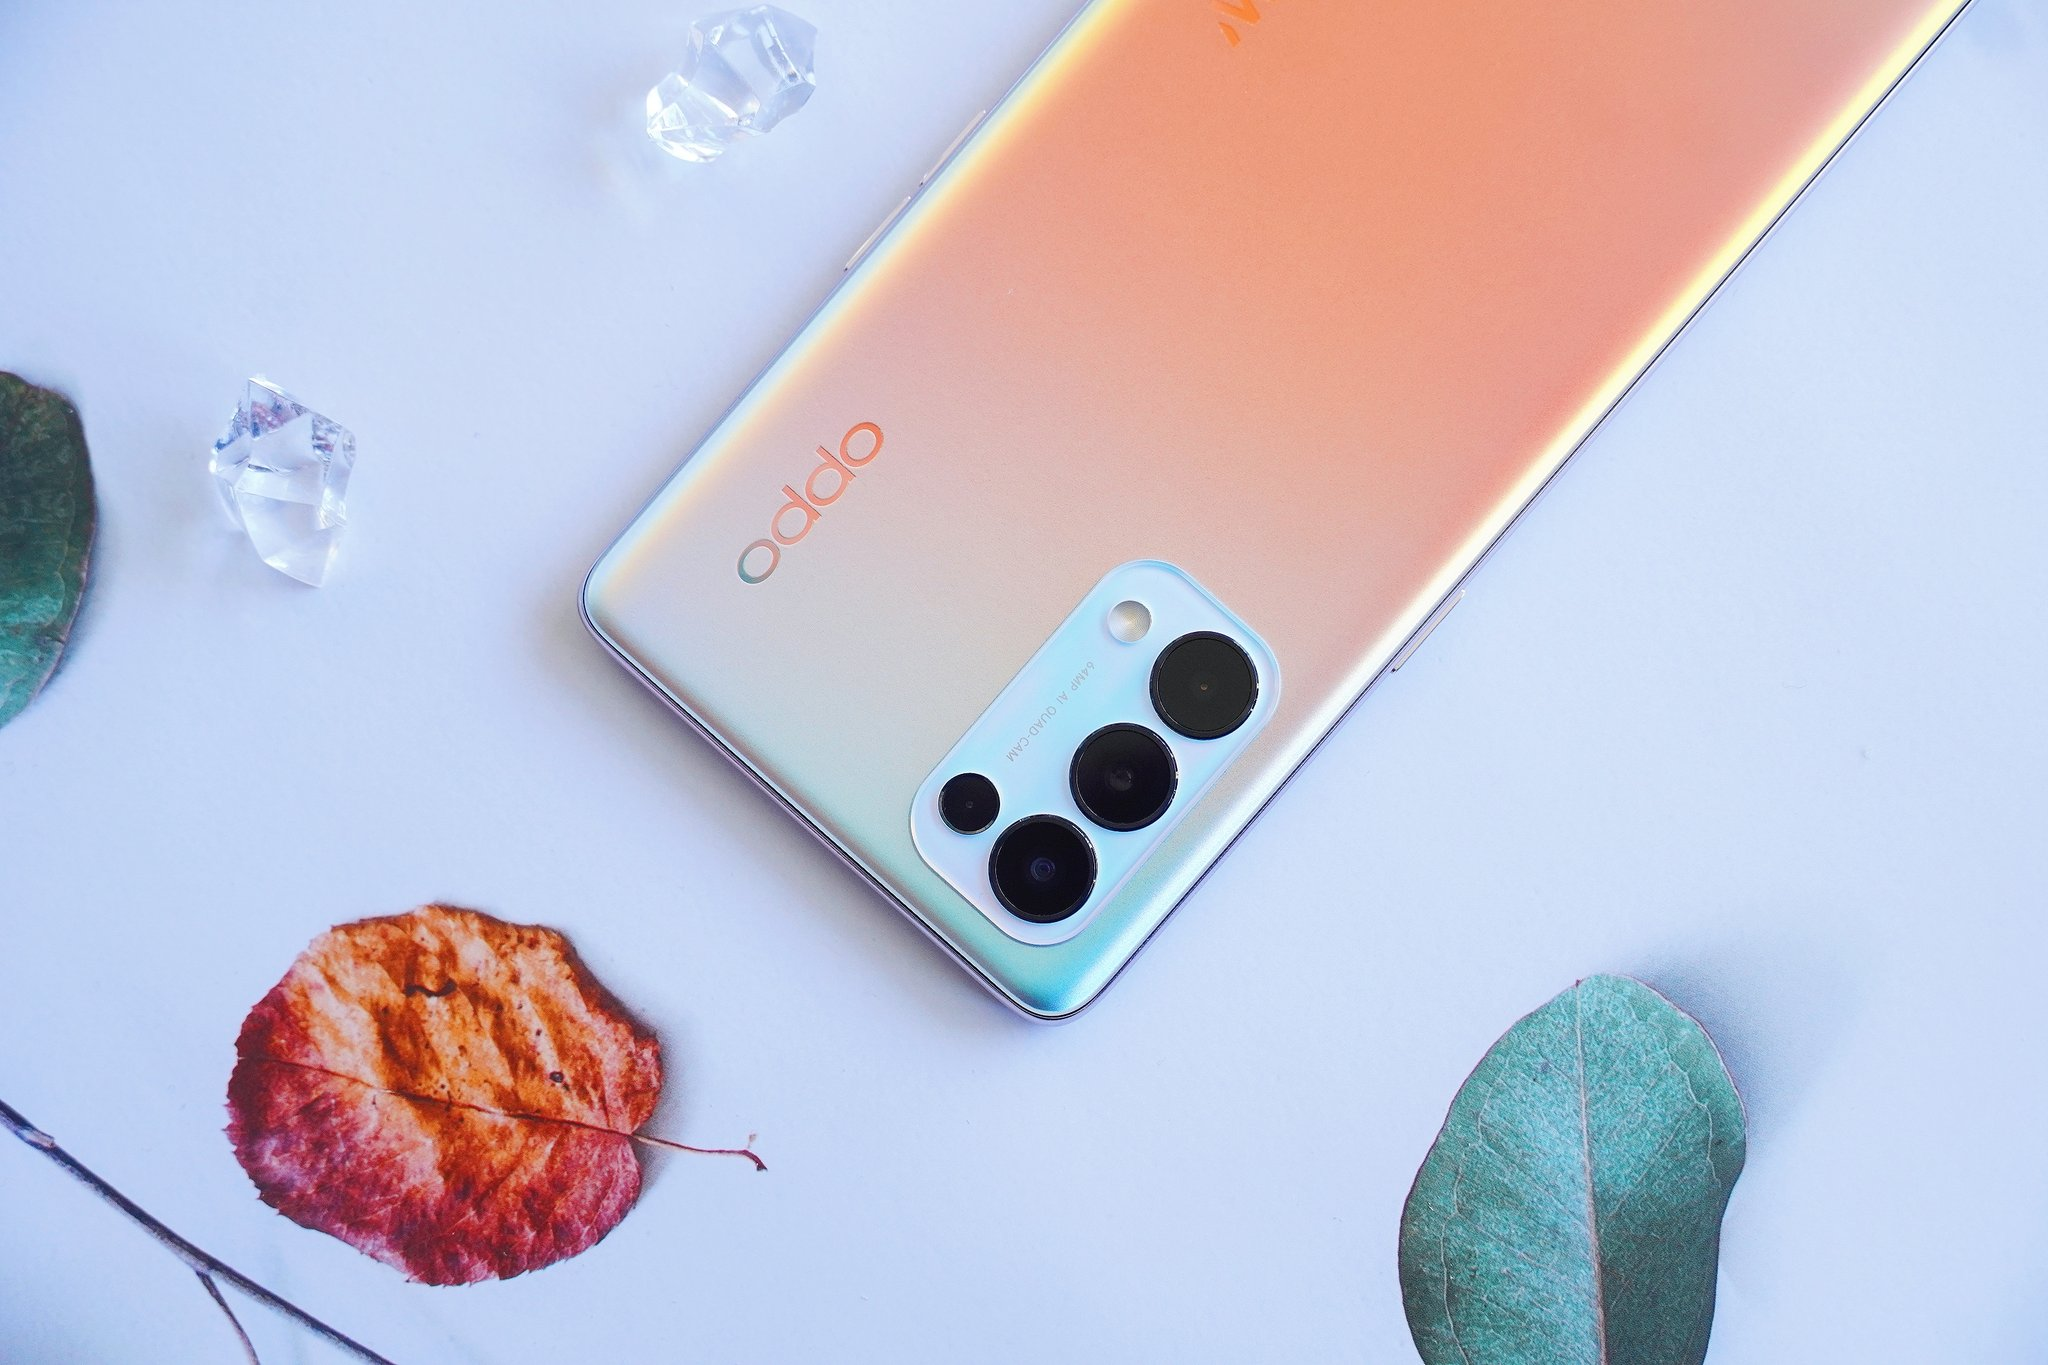 Oppo Reno 5 and Reno 5 Pro have been Launched for just 2,699 CNY - complete details here